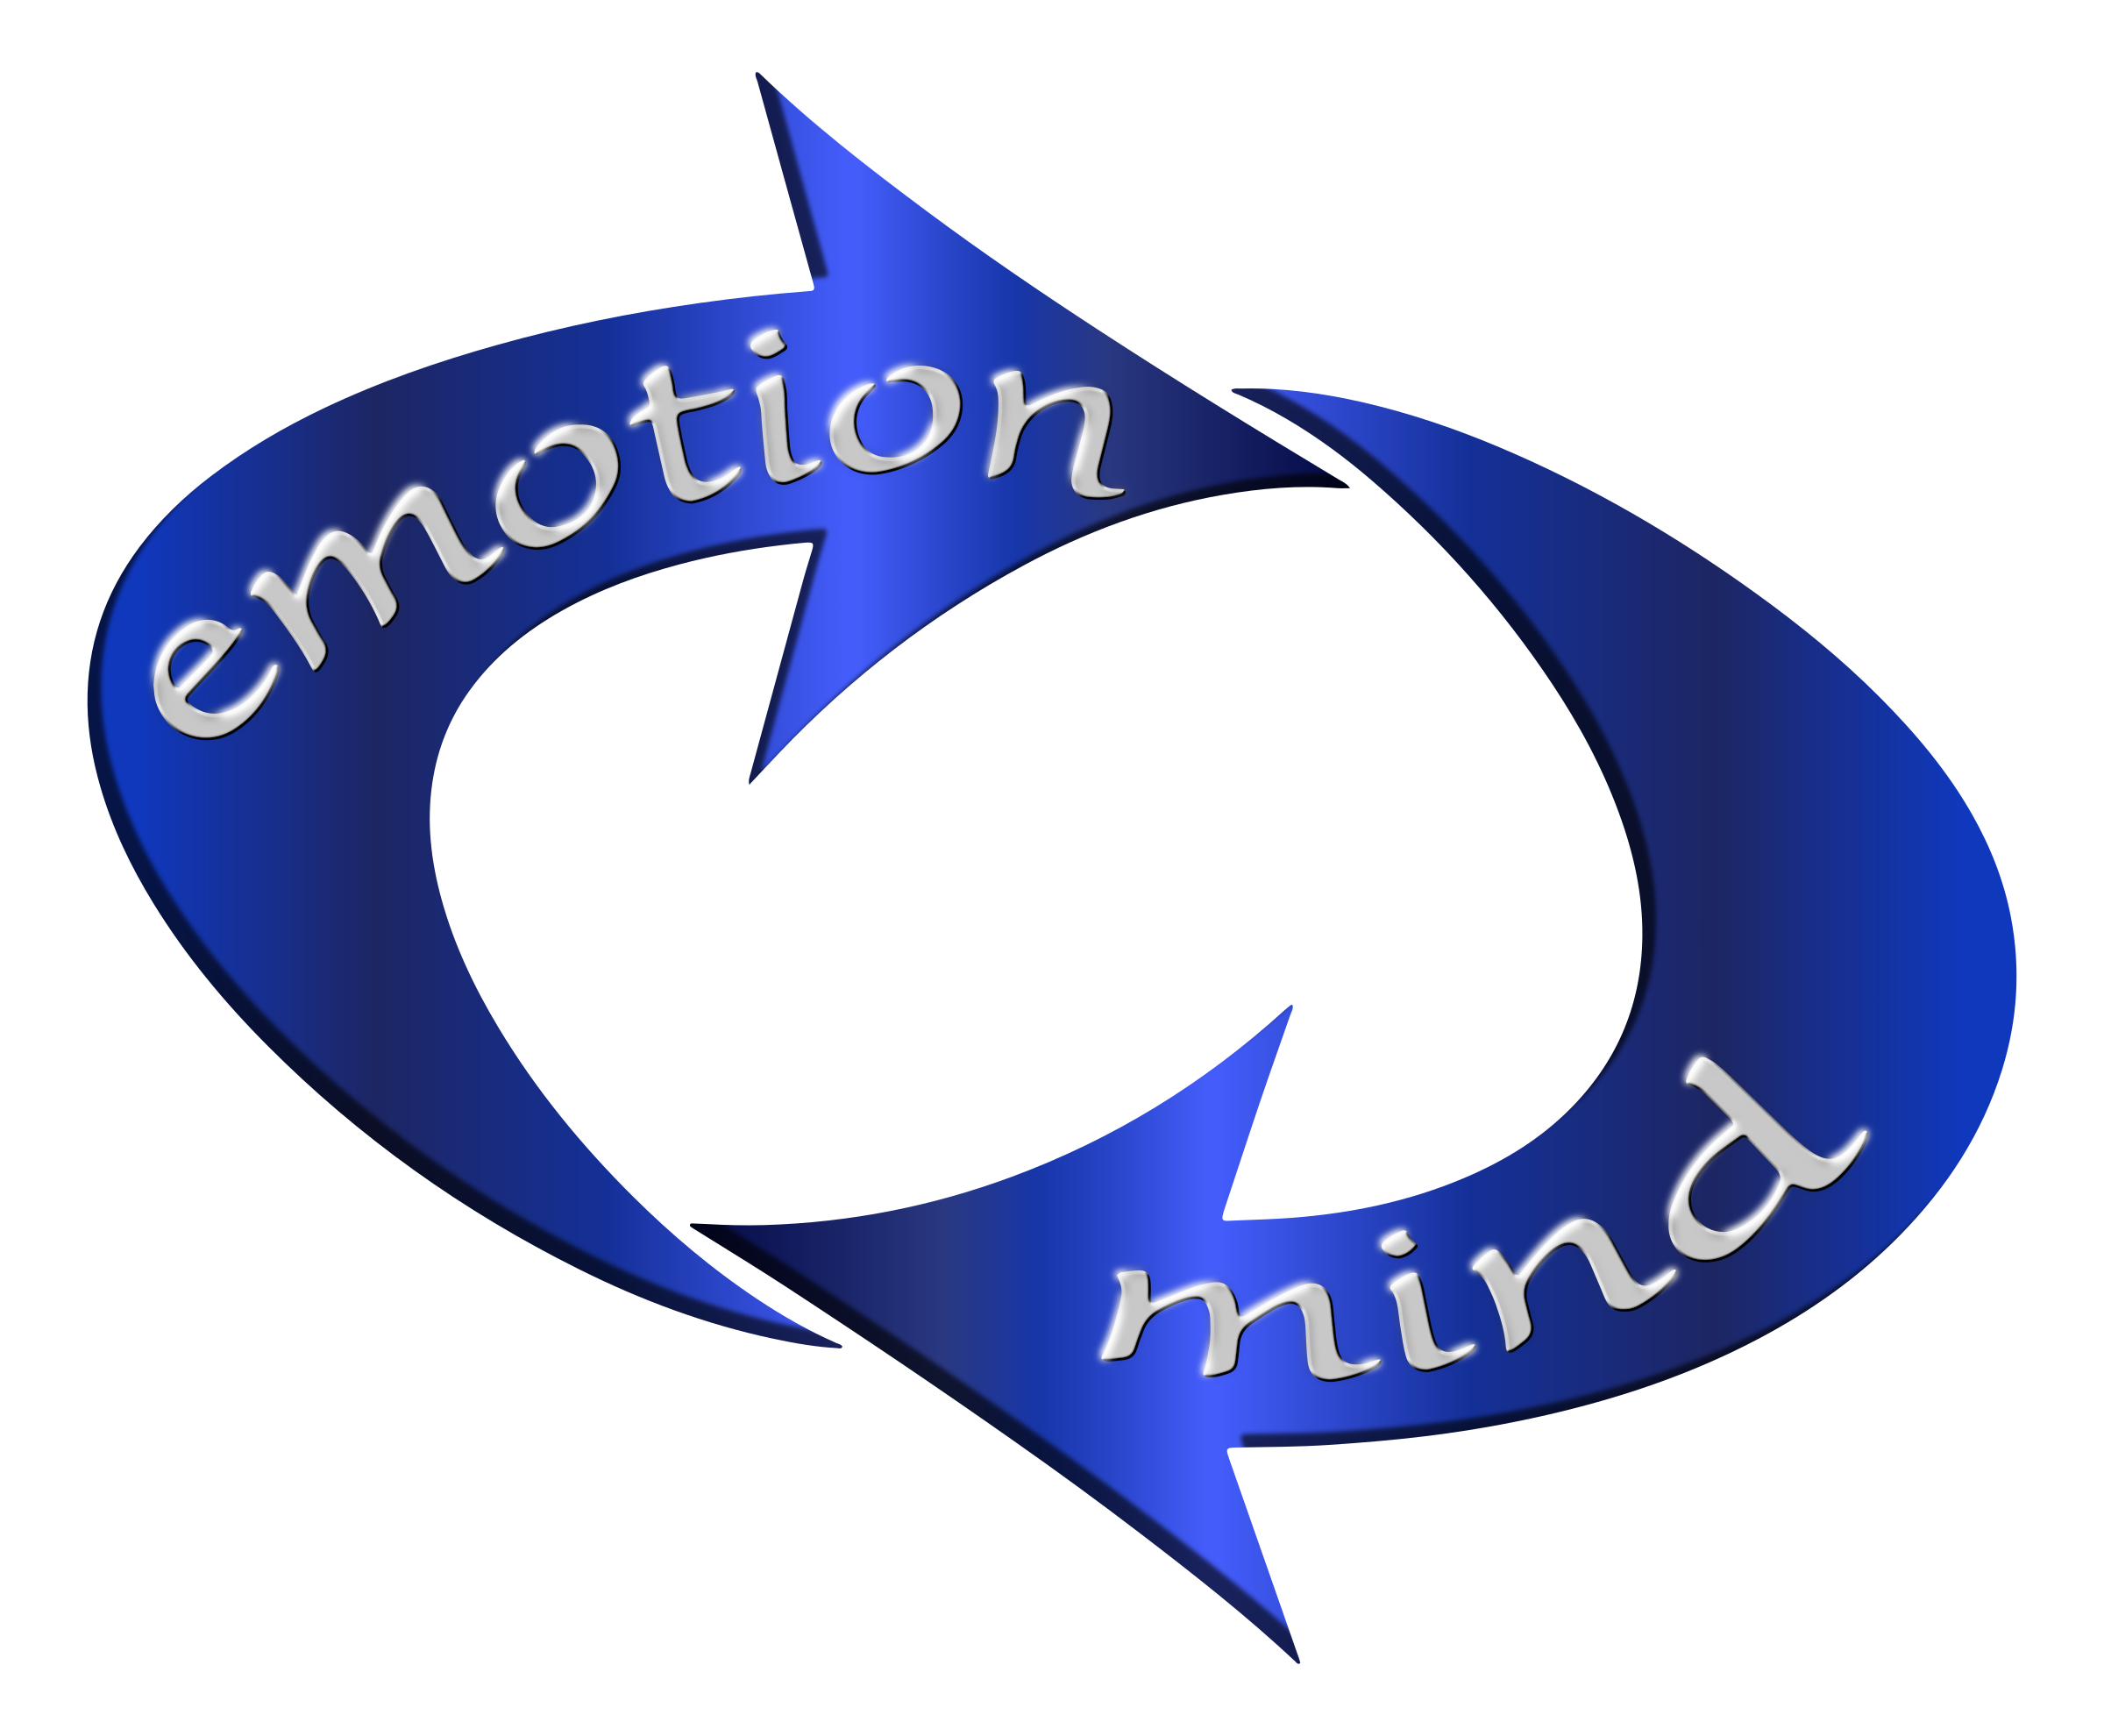 Motivation clipart goal. Mind emotion loop big